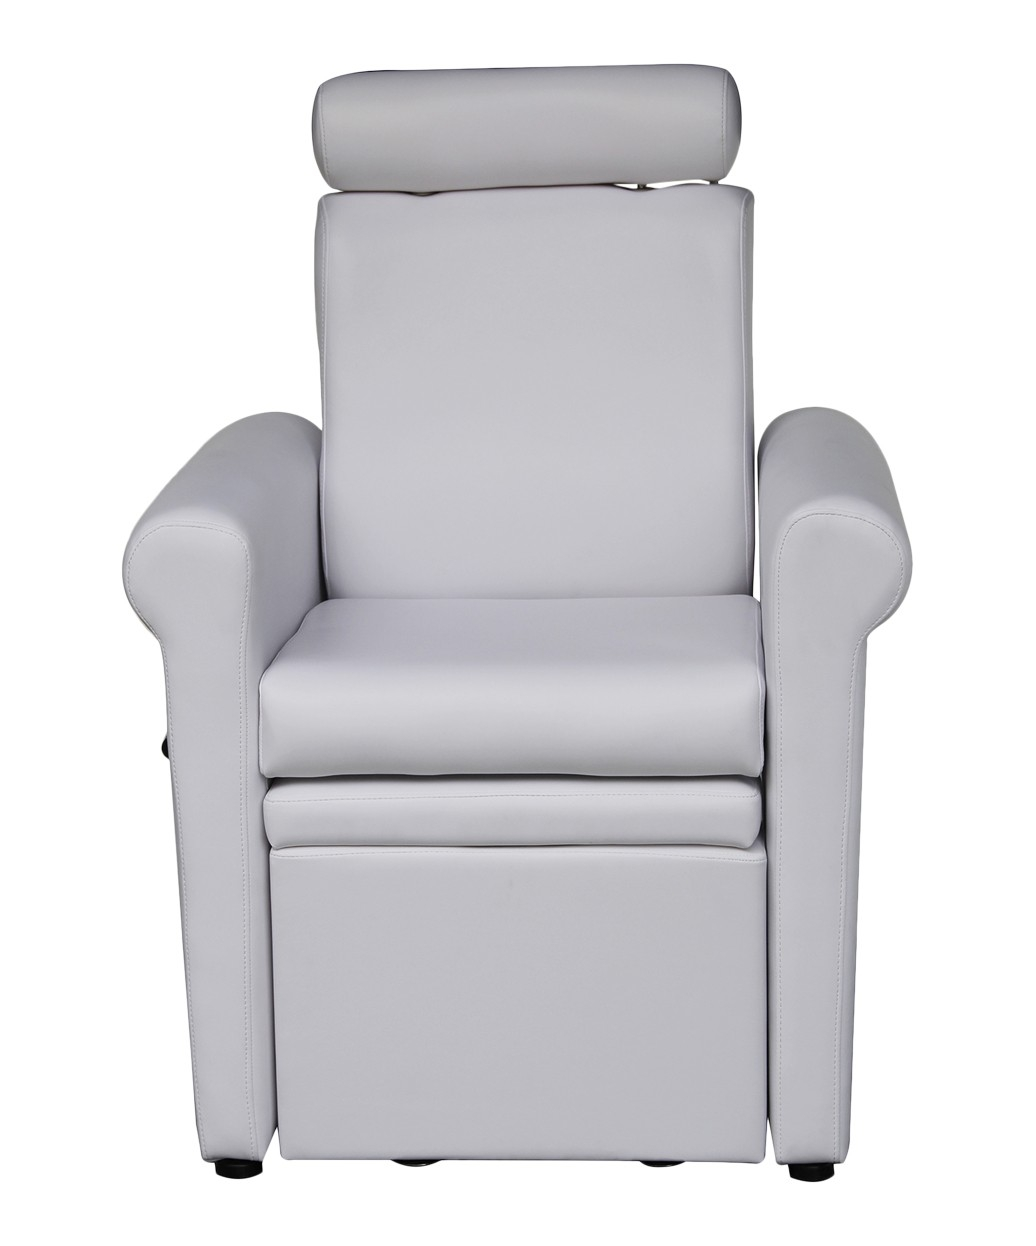 Pedicure chair wholesale with ceragem v3 price supplier for